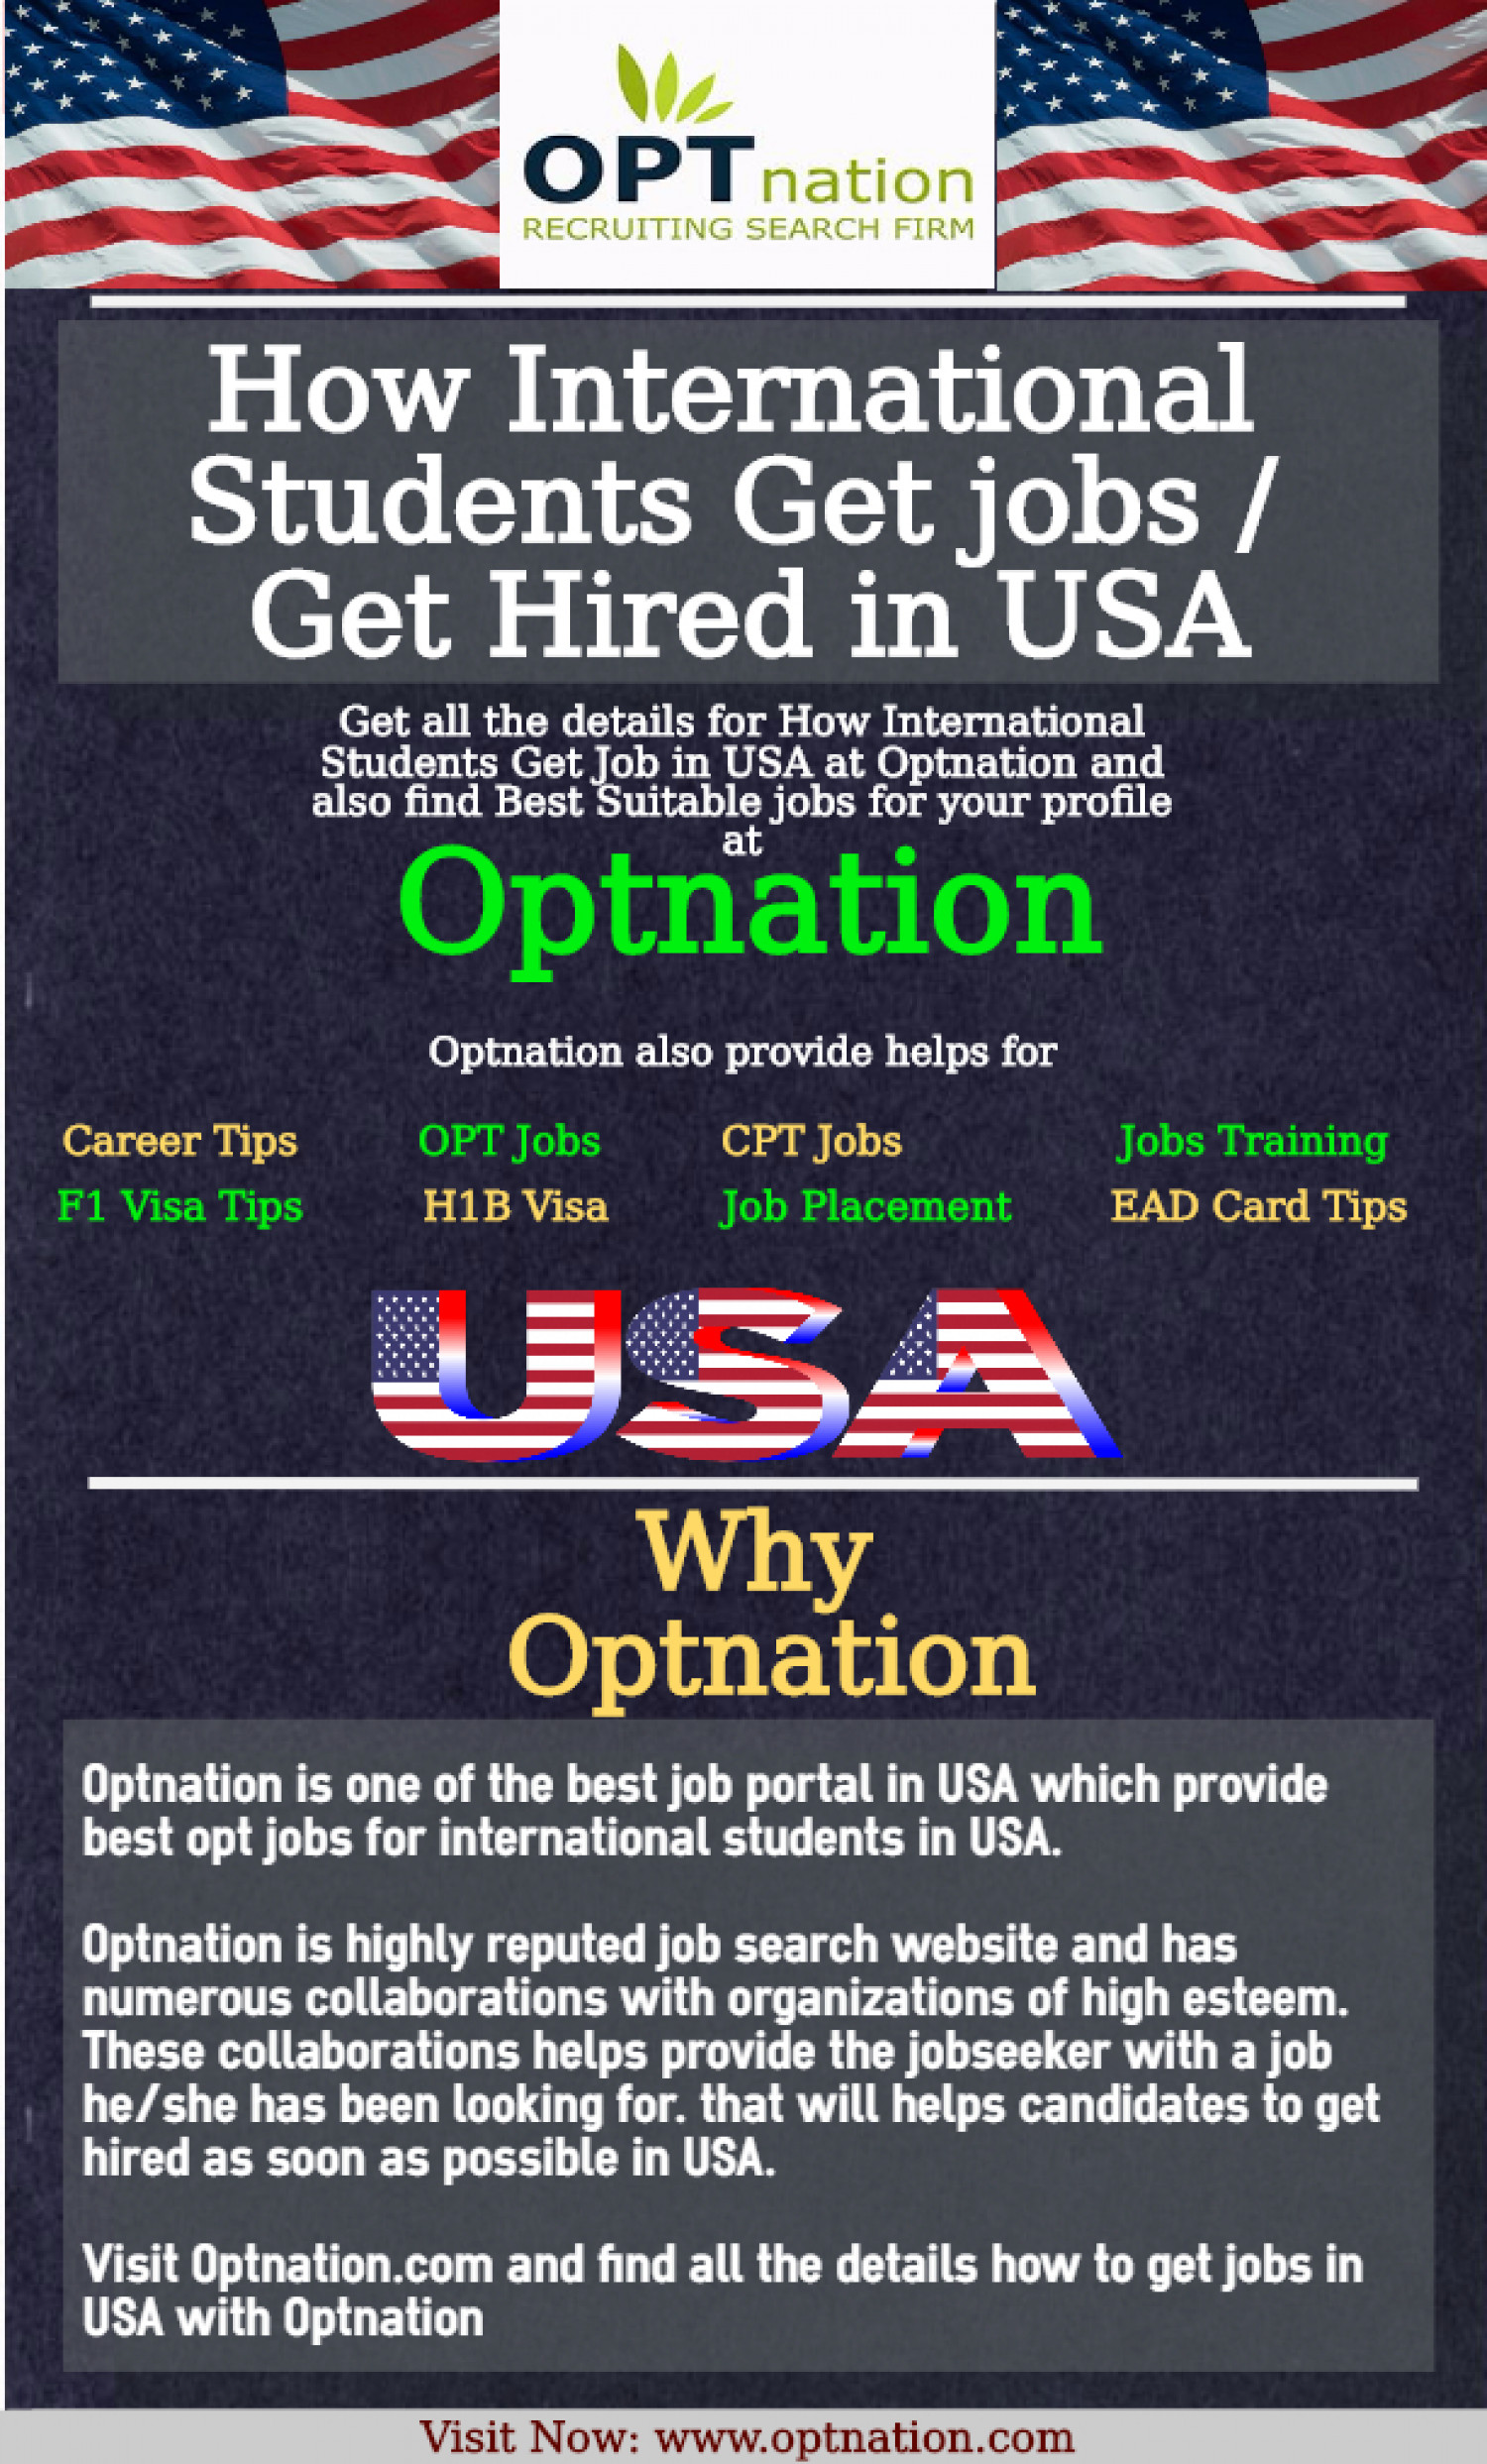 Opt jobs for international students in USA Infographic